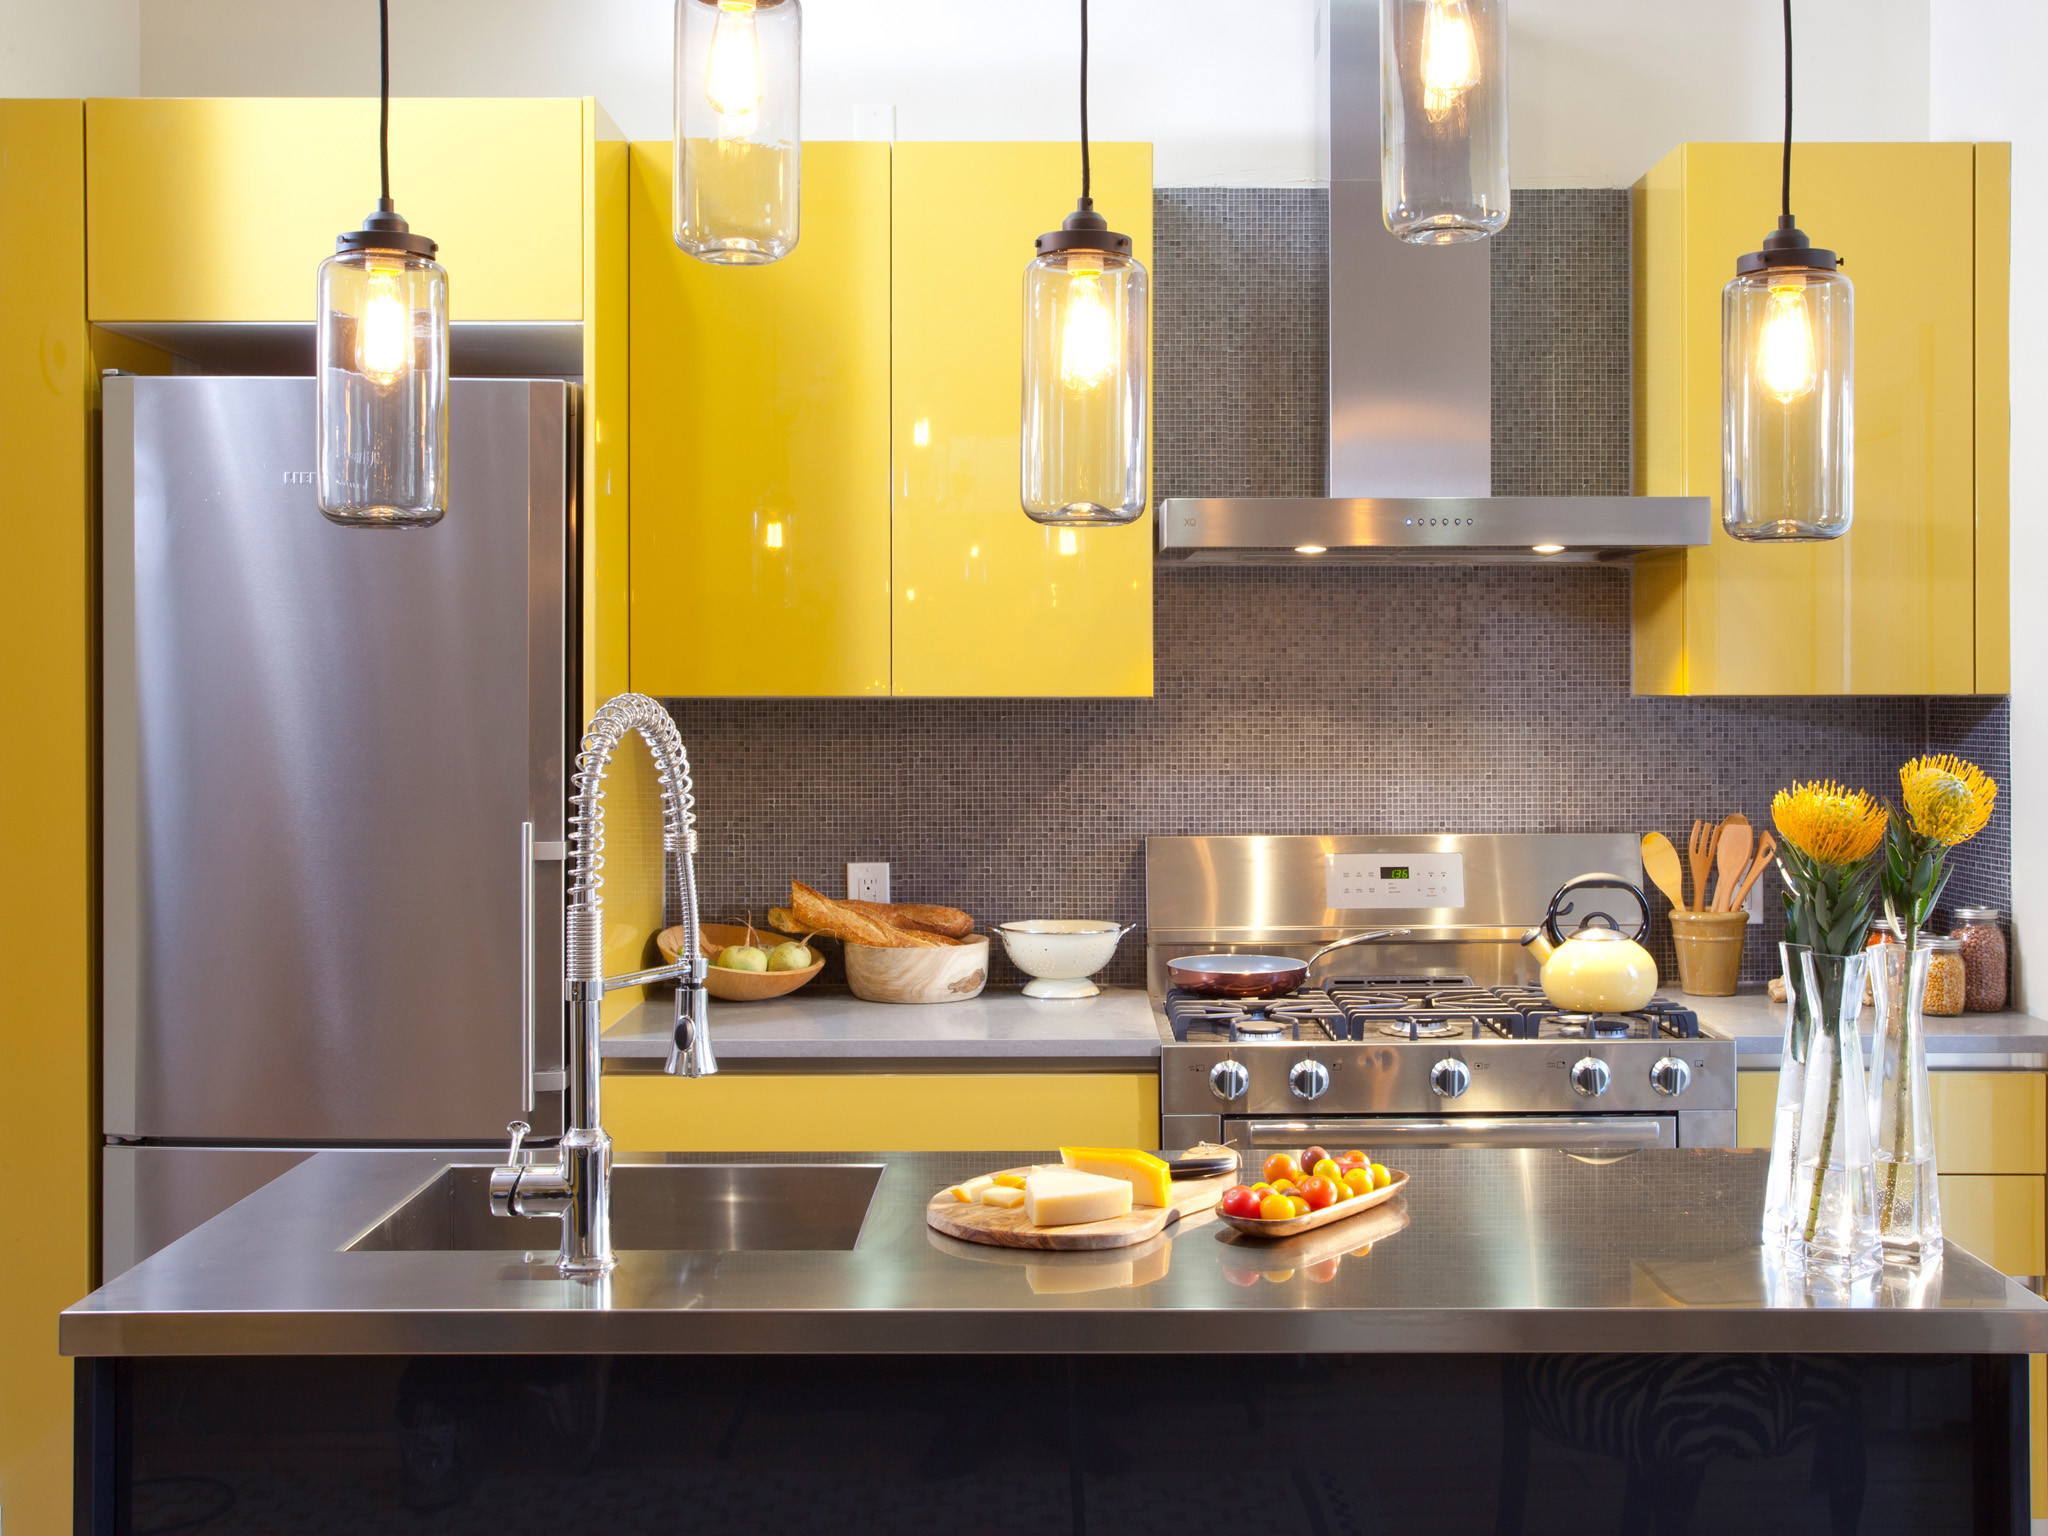 After photos of the Perrota Kitchen. As seen on HGTV's Kitchen Cousins.